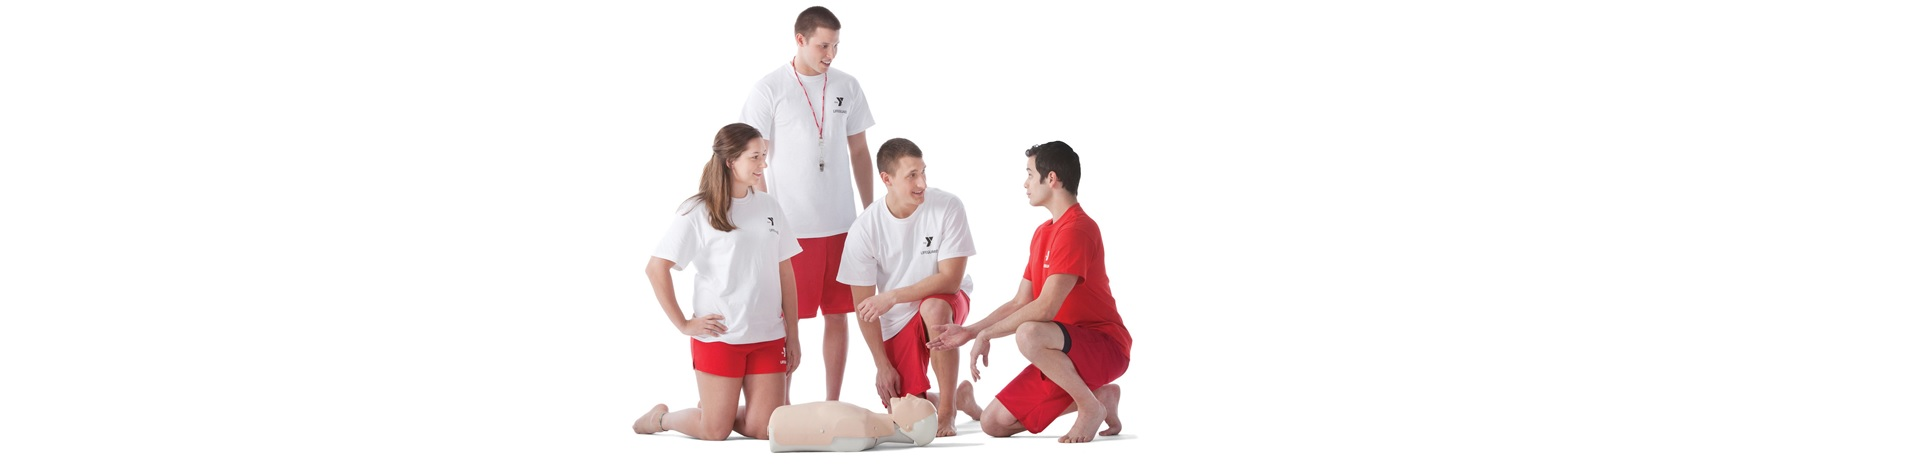 FIRST AID/AED/CPR TRAINING